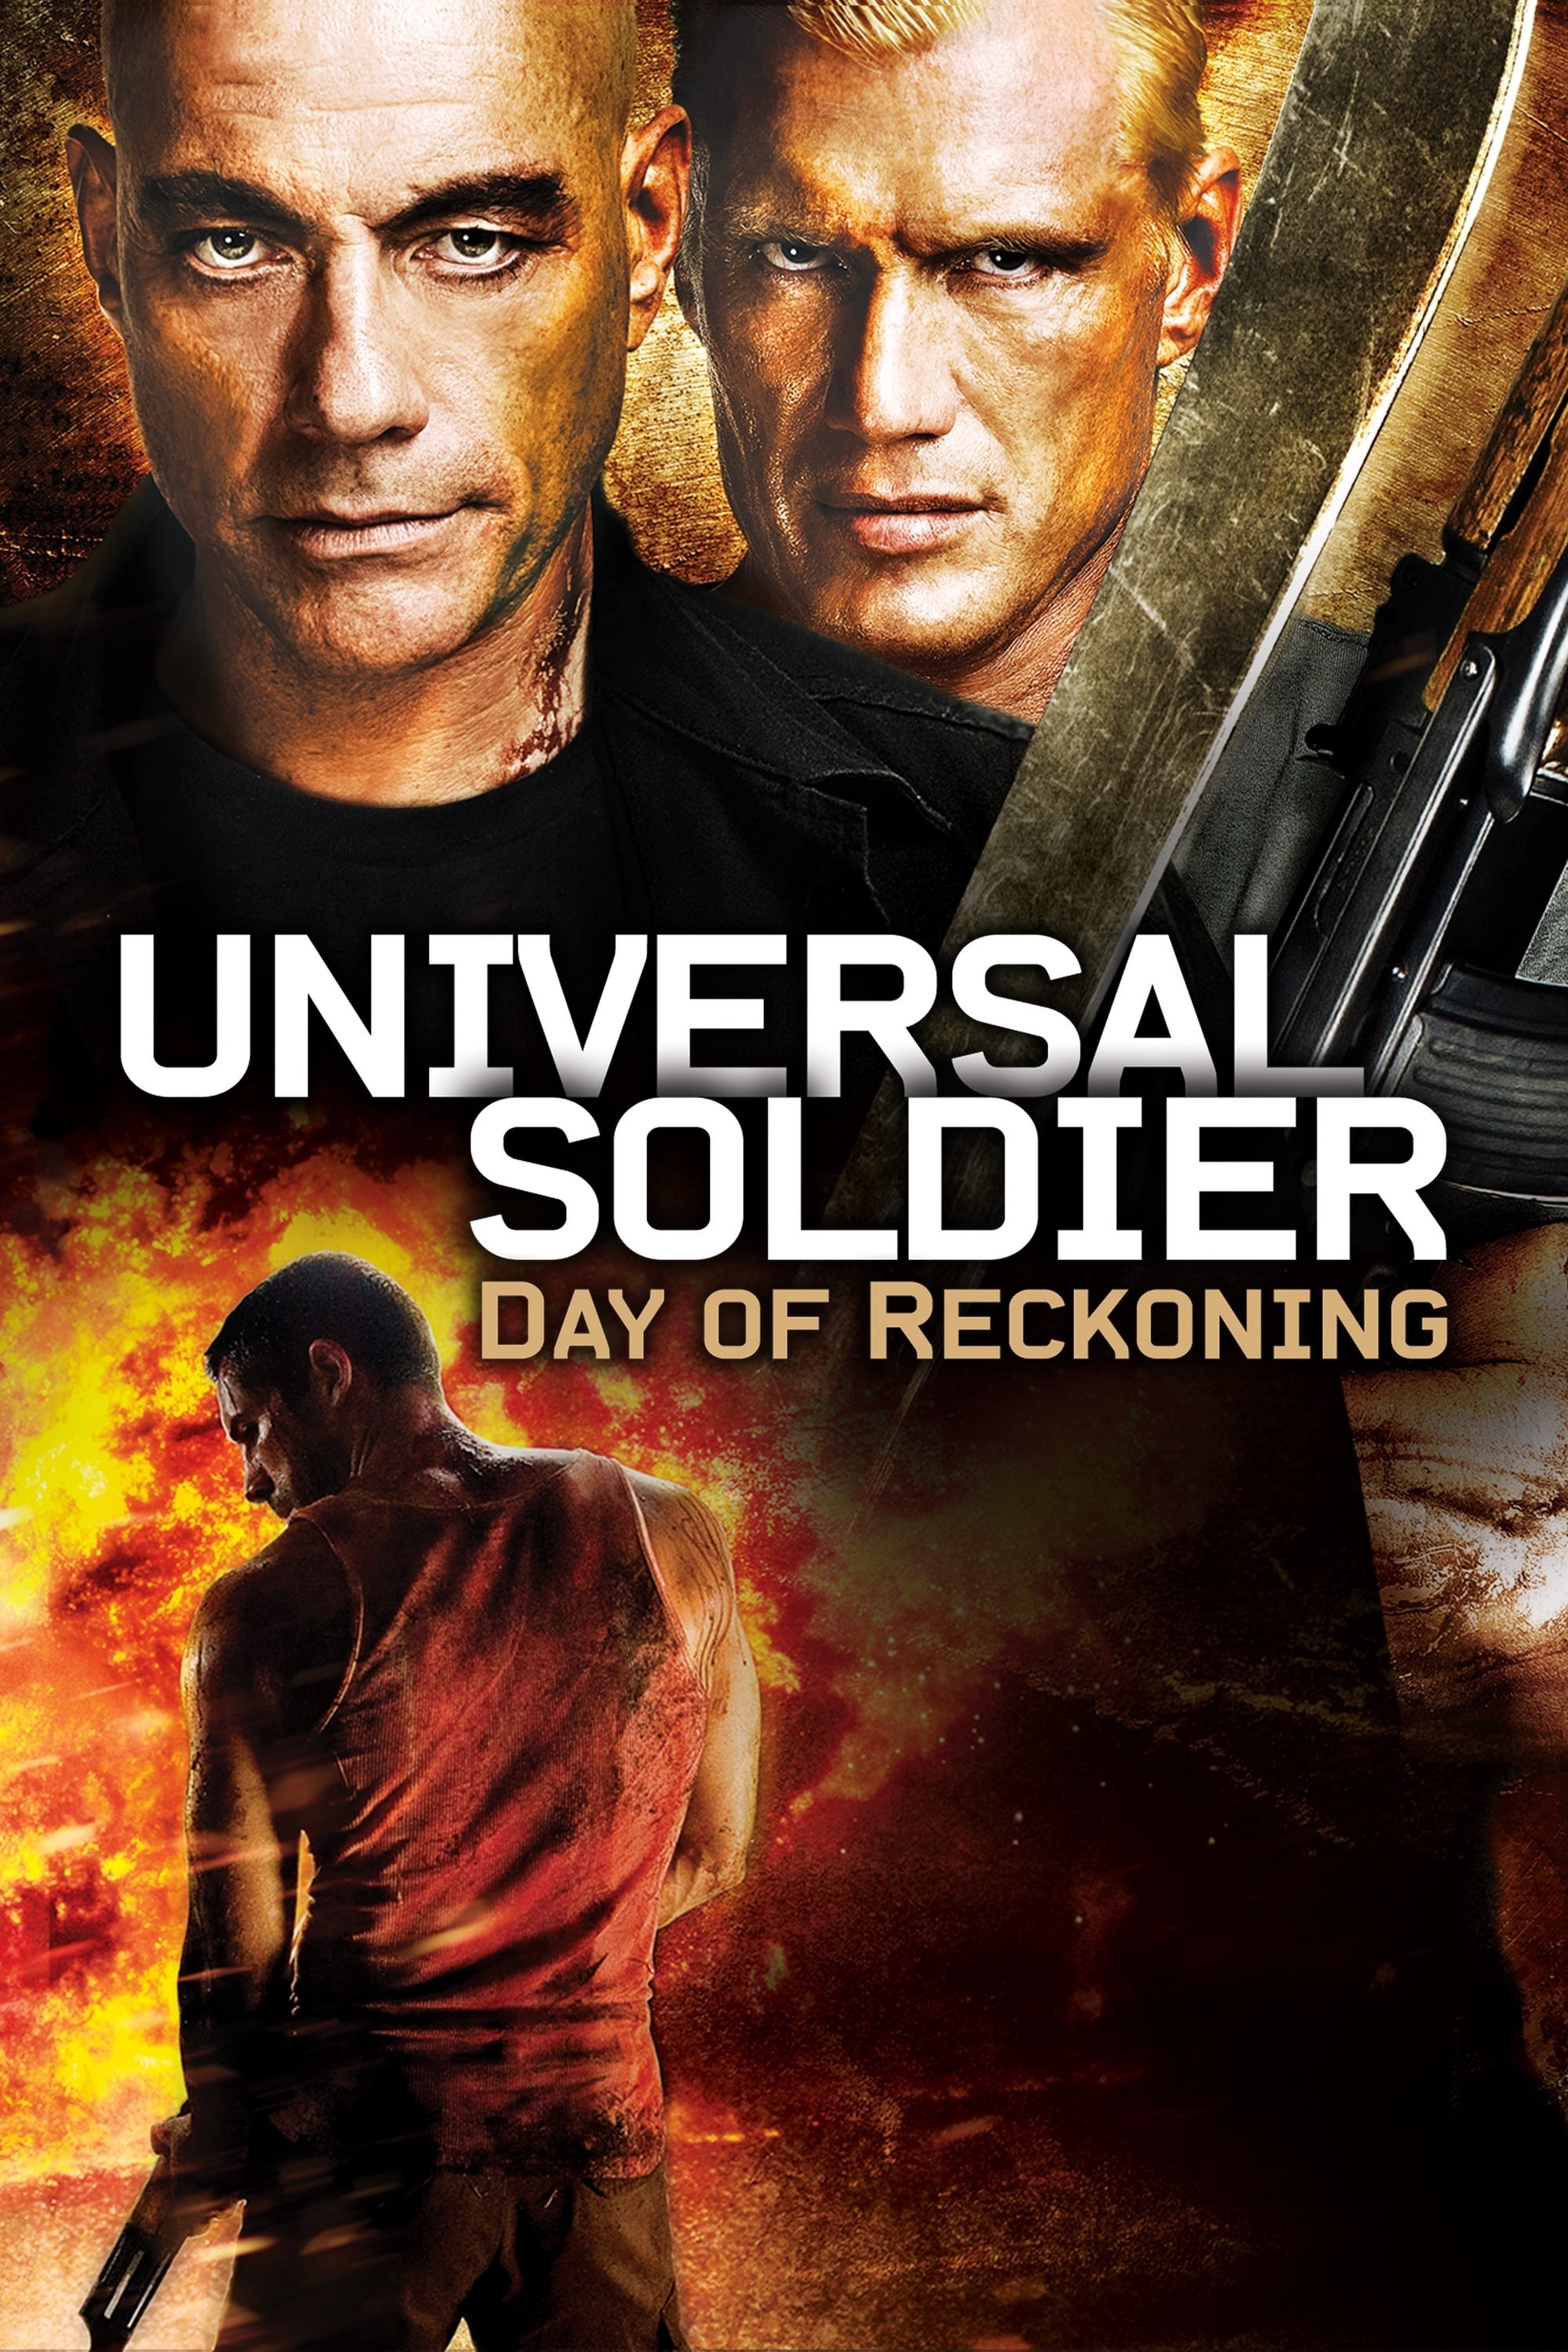 Watch Universal Soldier: Day of Reckoning Online